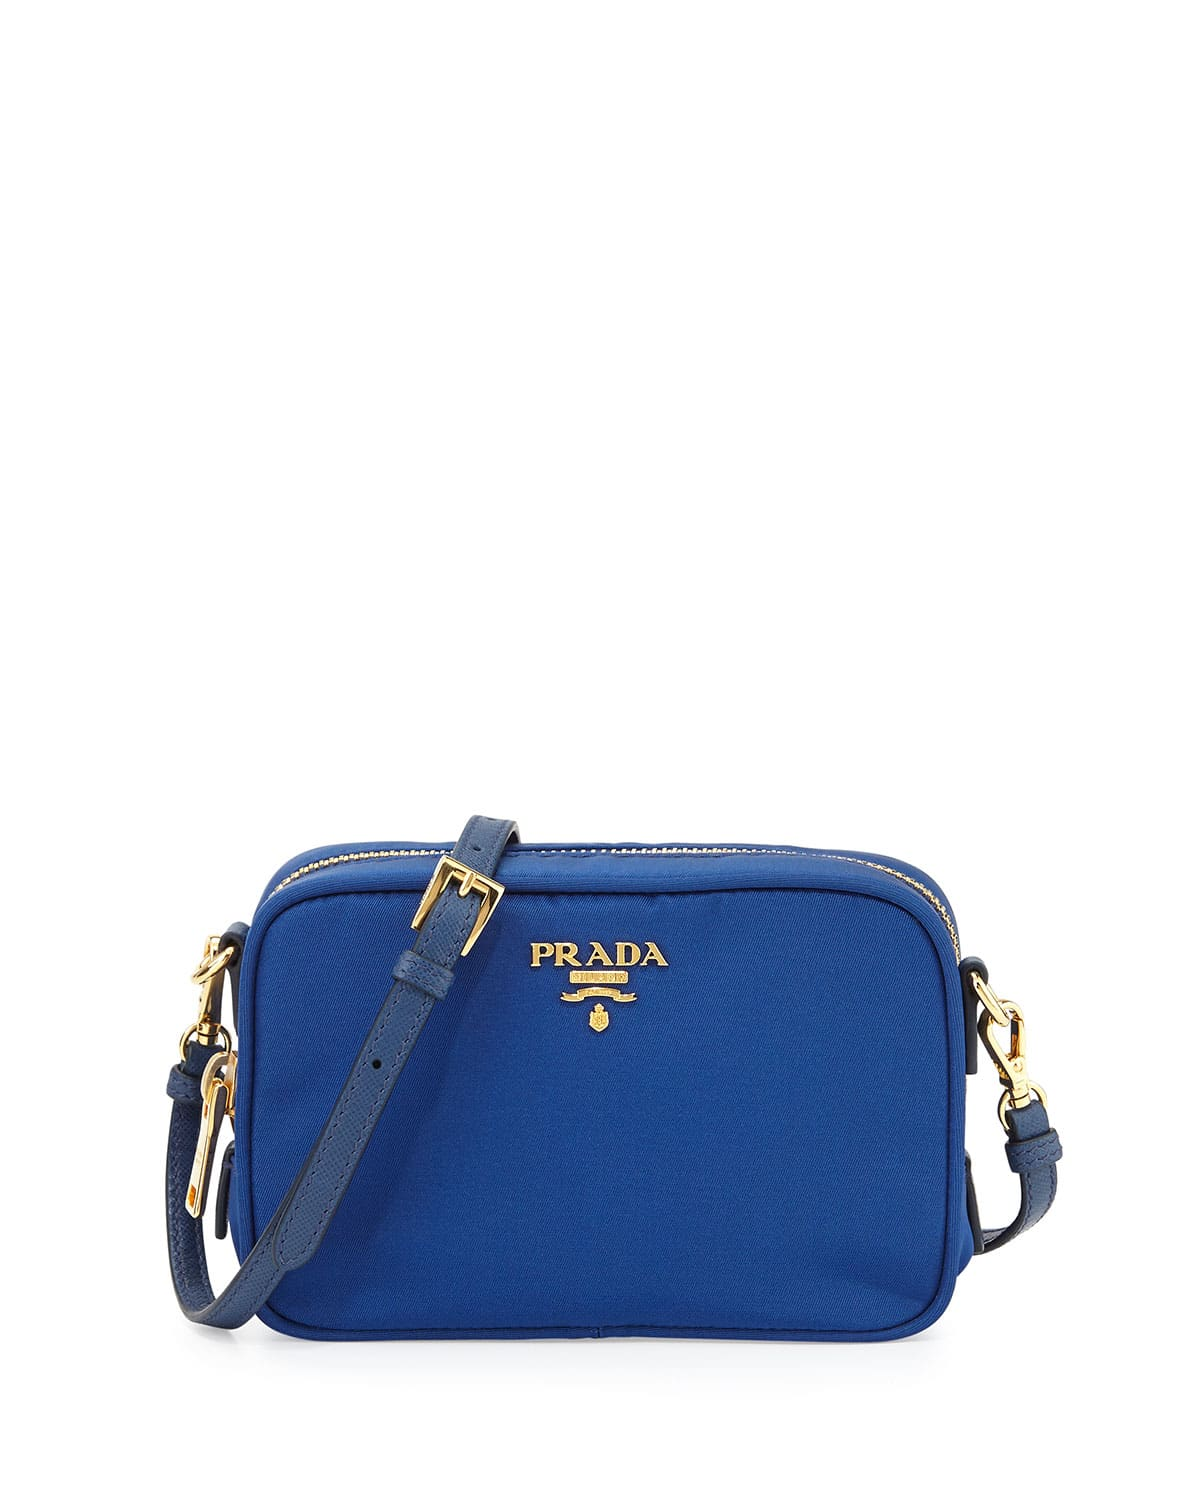 Prada Pre-Fall 2014 Bag Collection featuring new Double Totes in ...